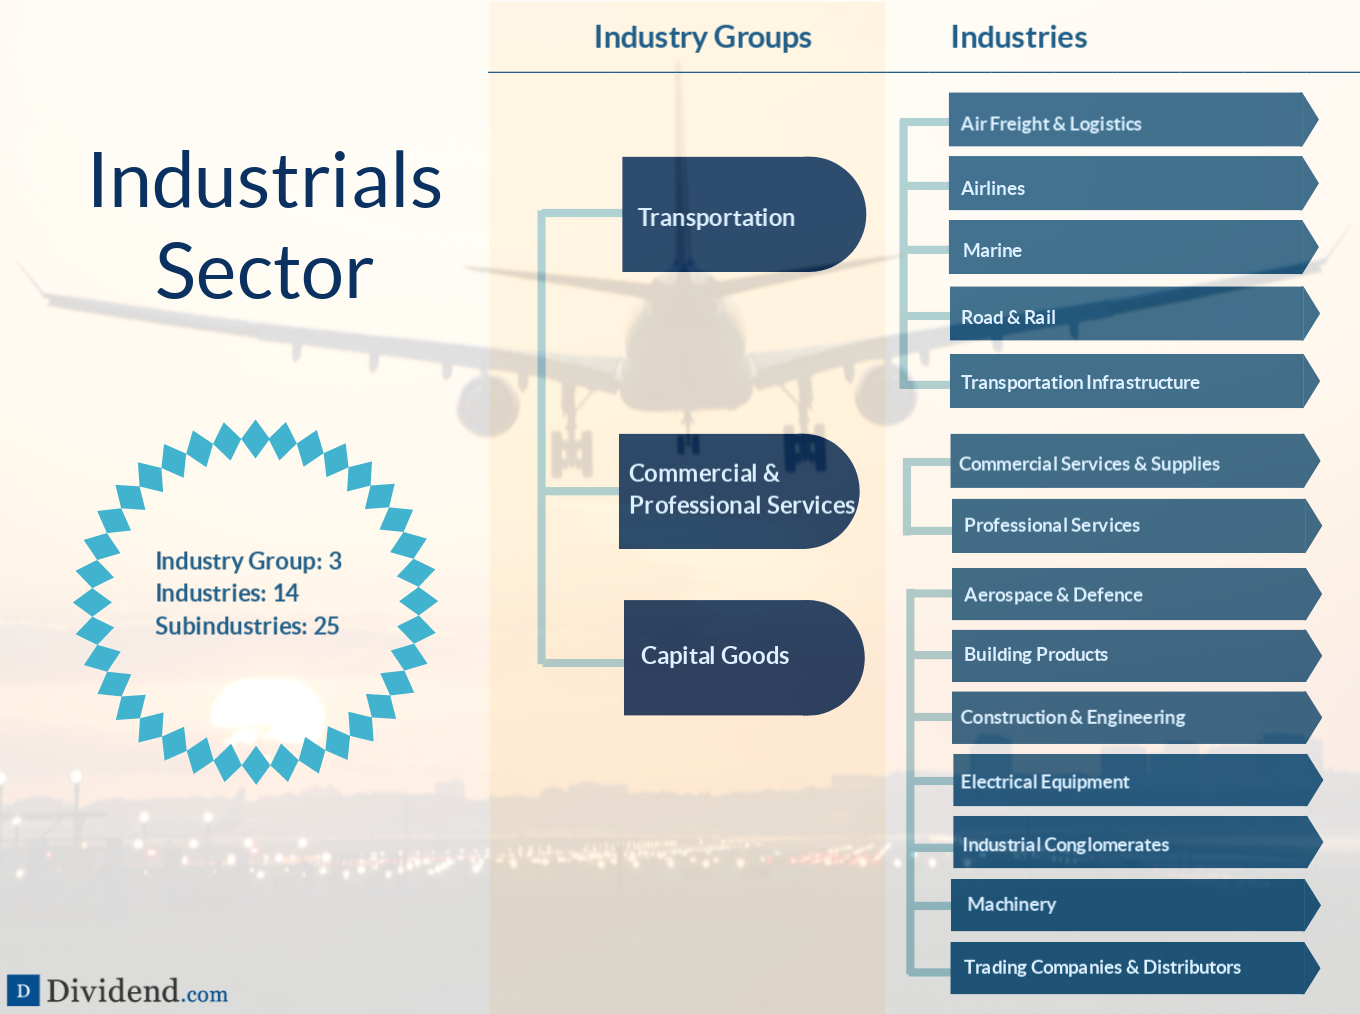 Industrial Sector Image